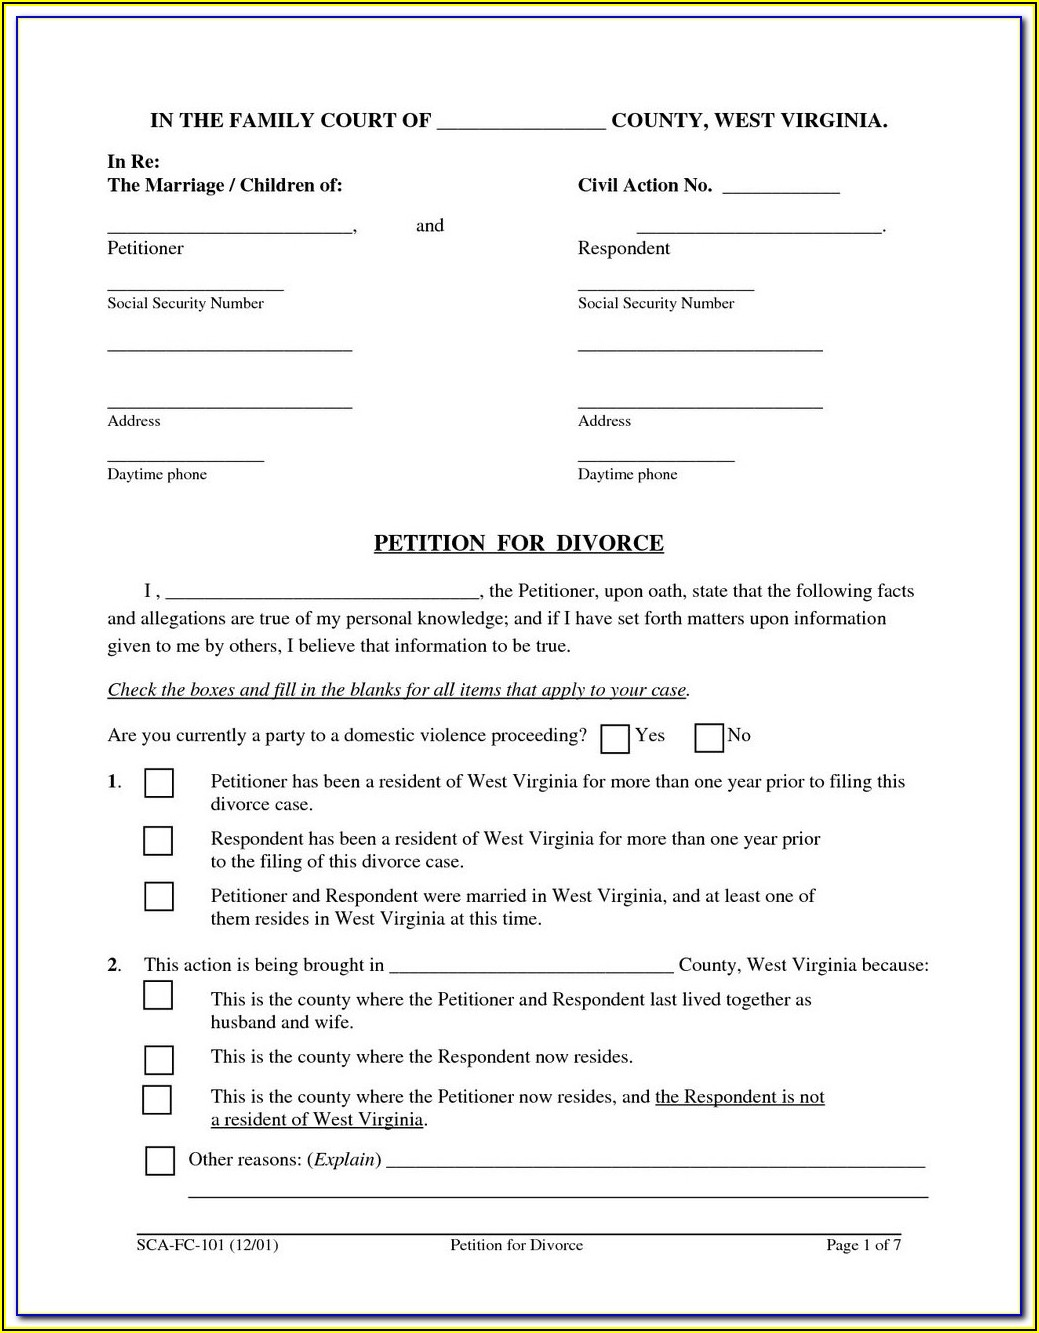 Fulton County Probate Court Forms